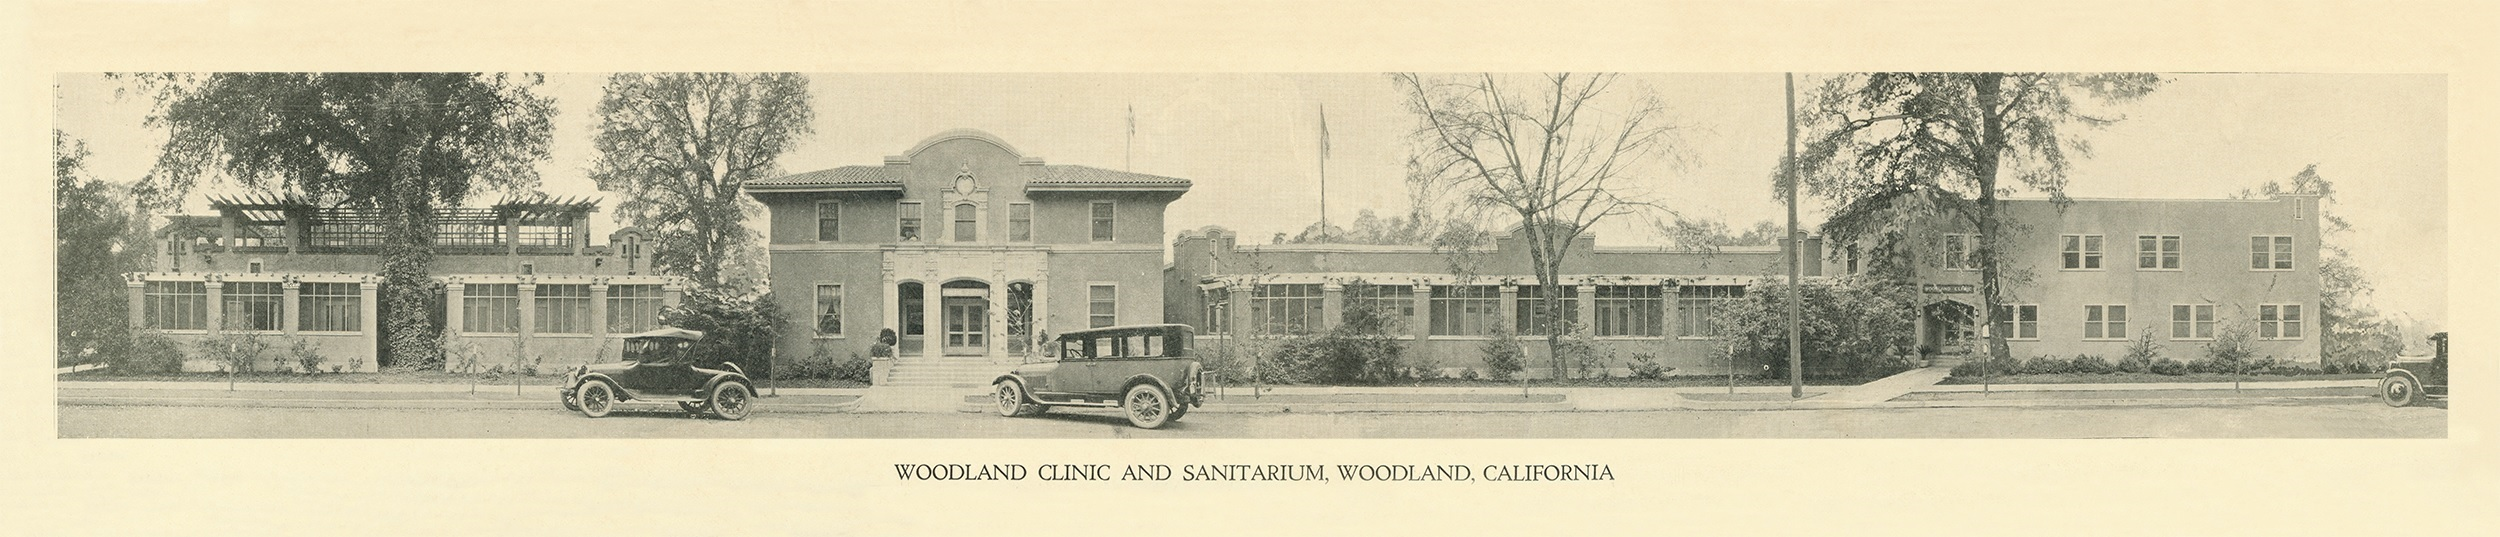 Woodland ClinicSanitarium